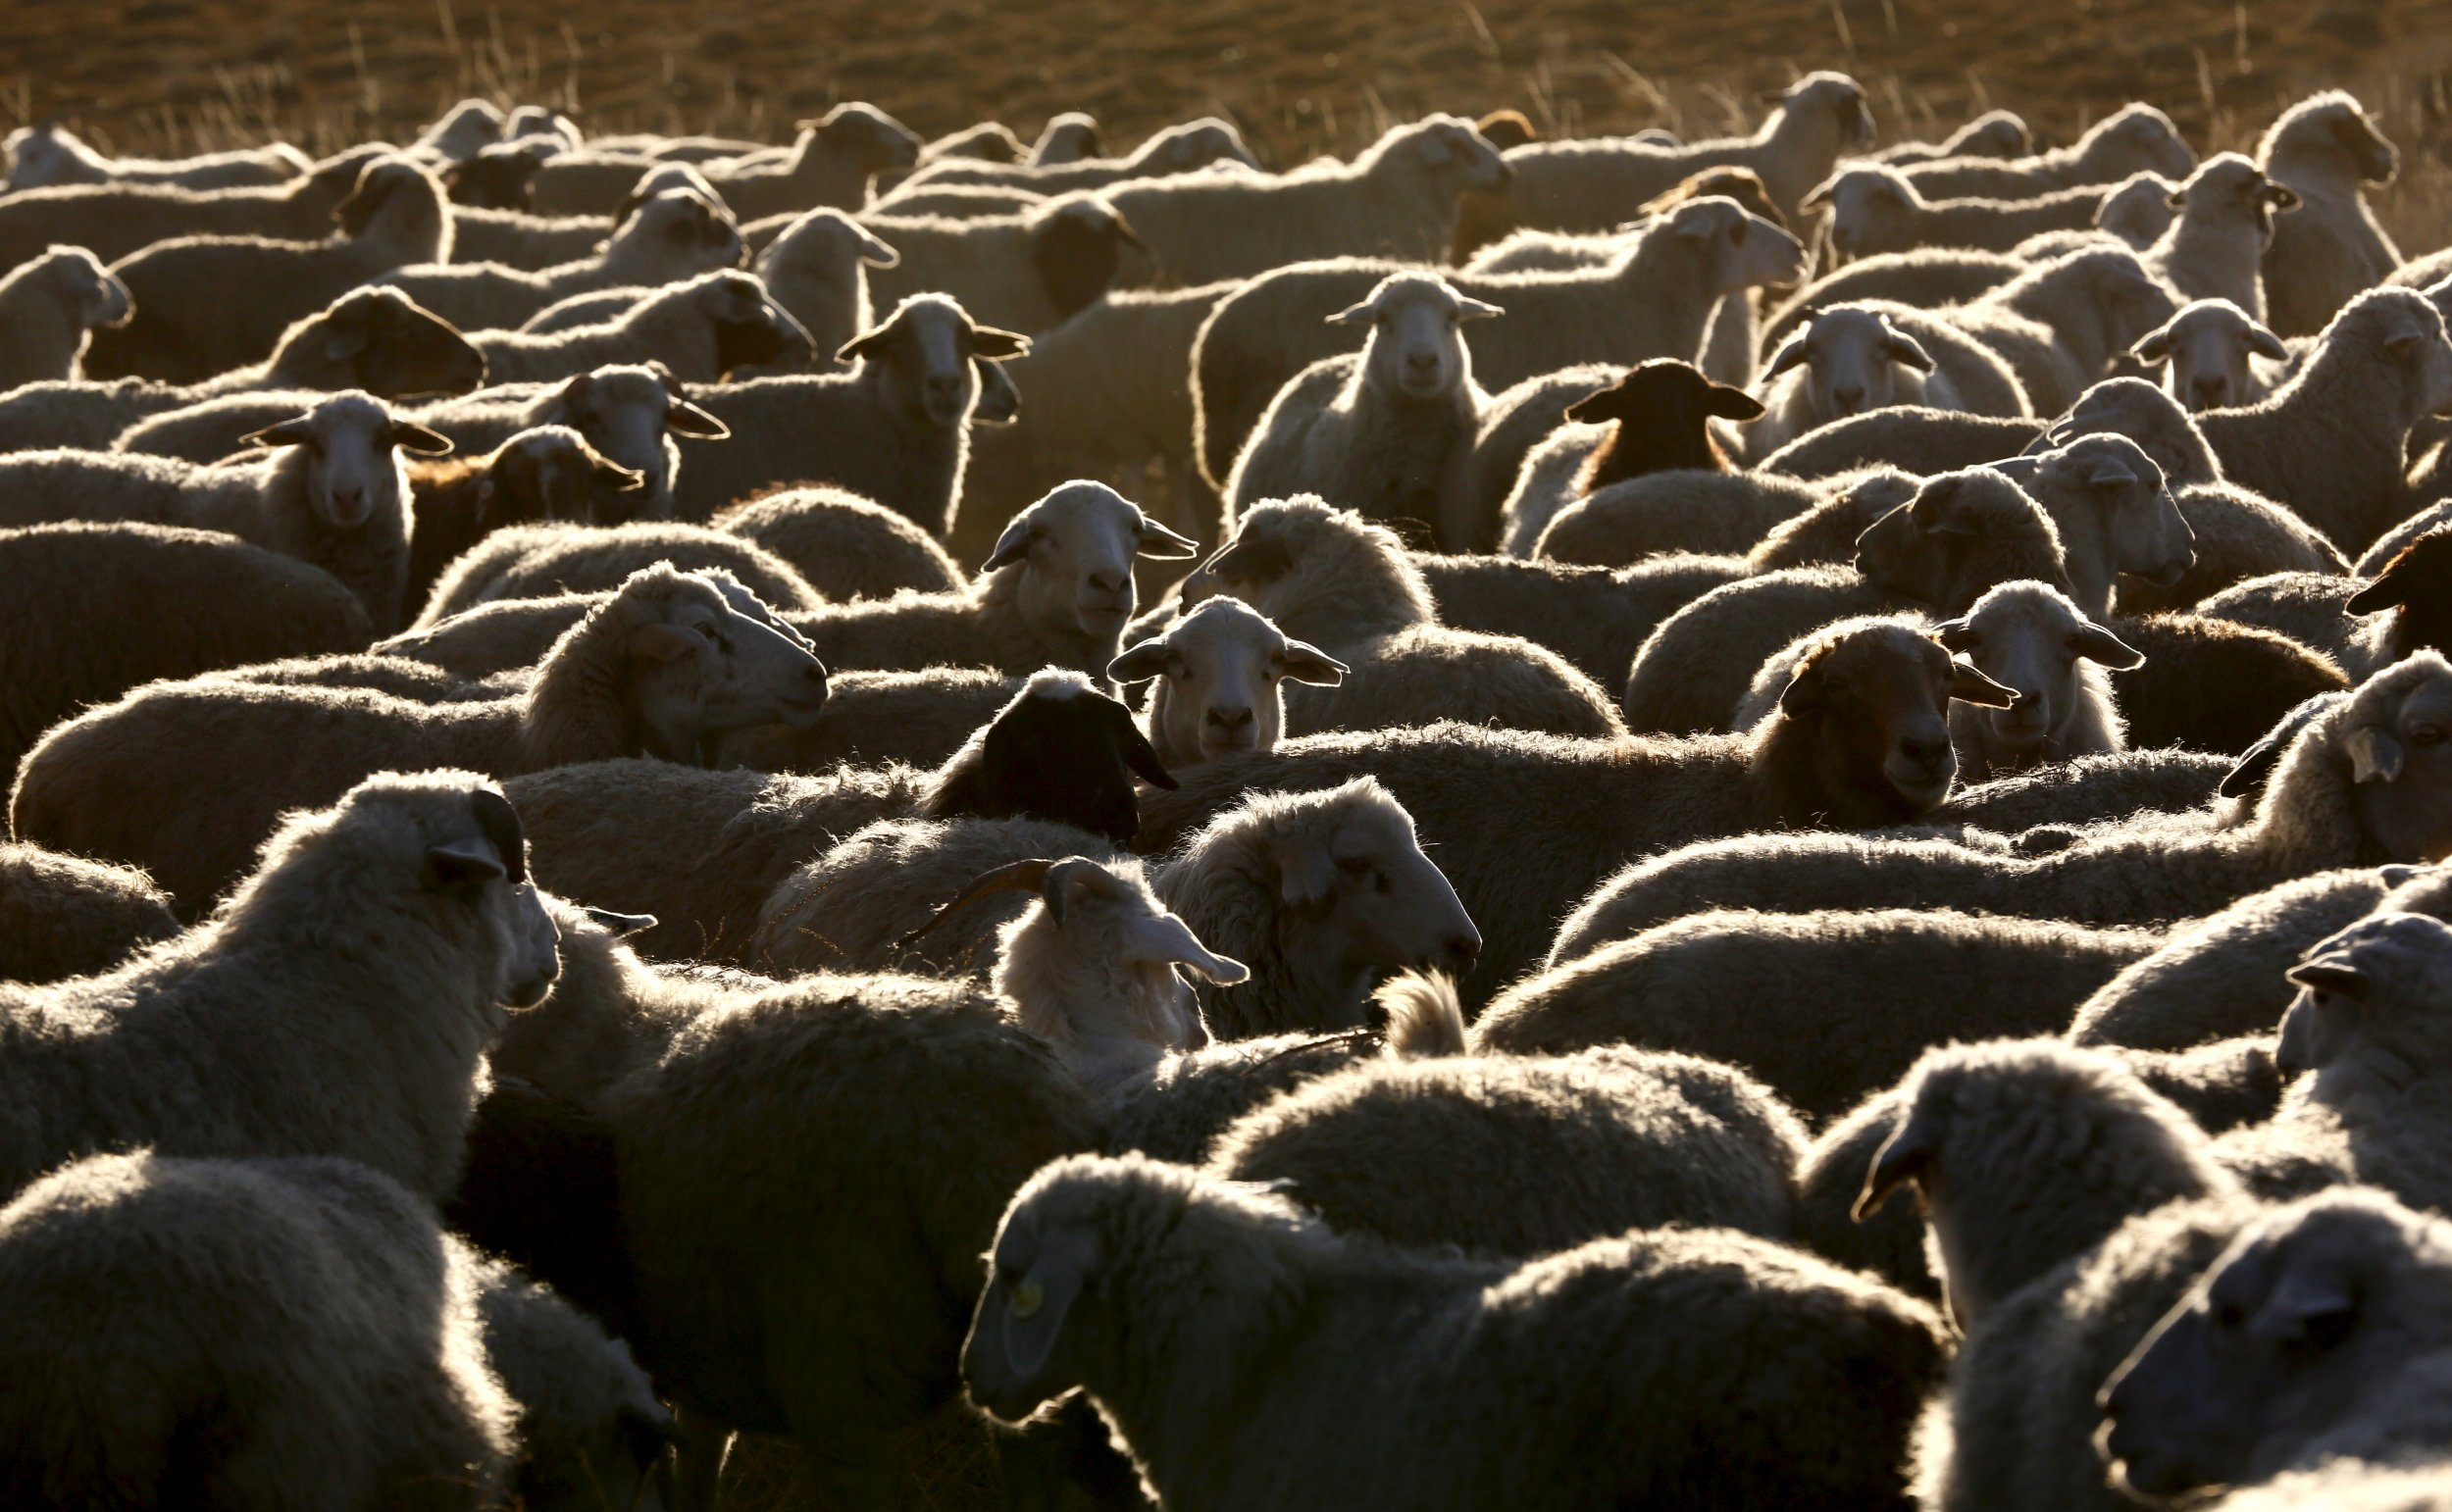 sheep-and-goat-herd-02.19.16